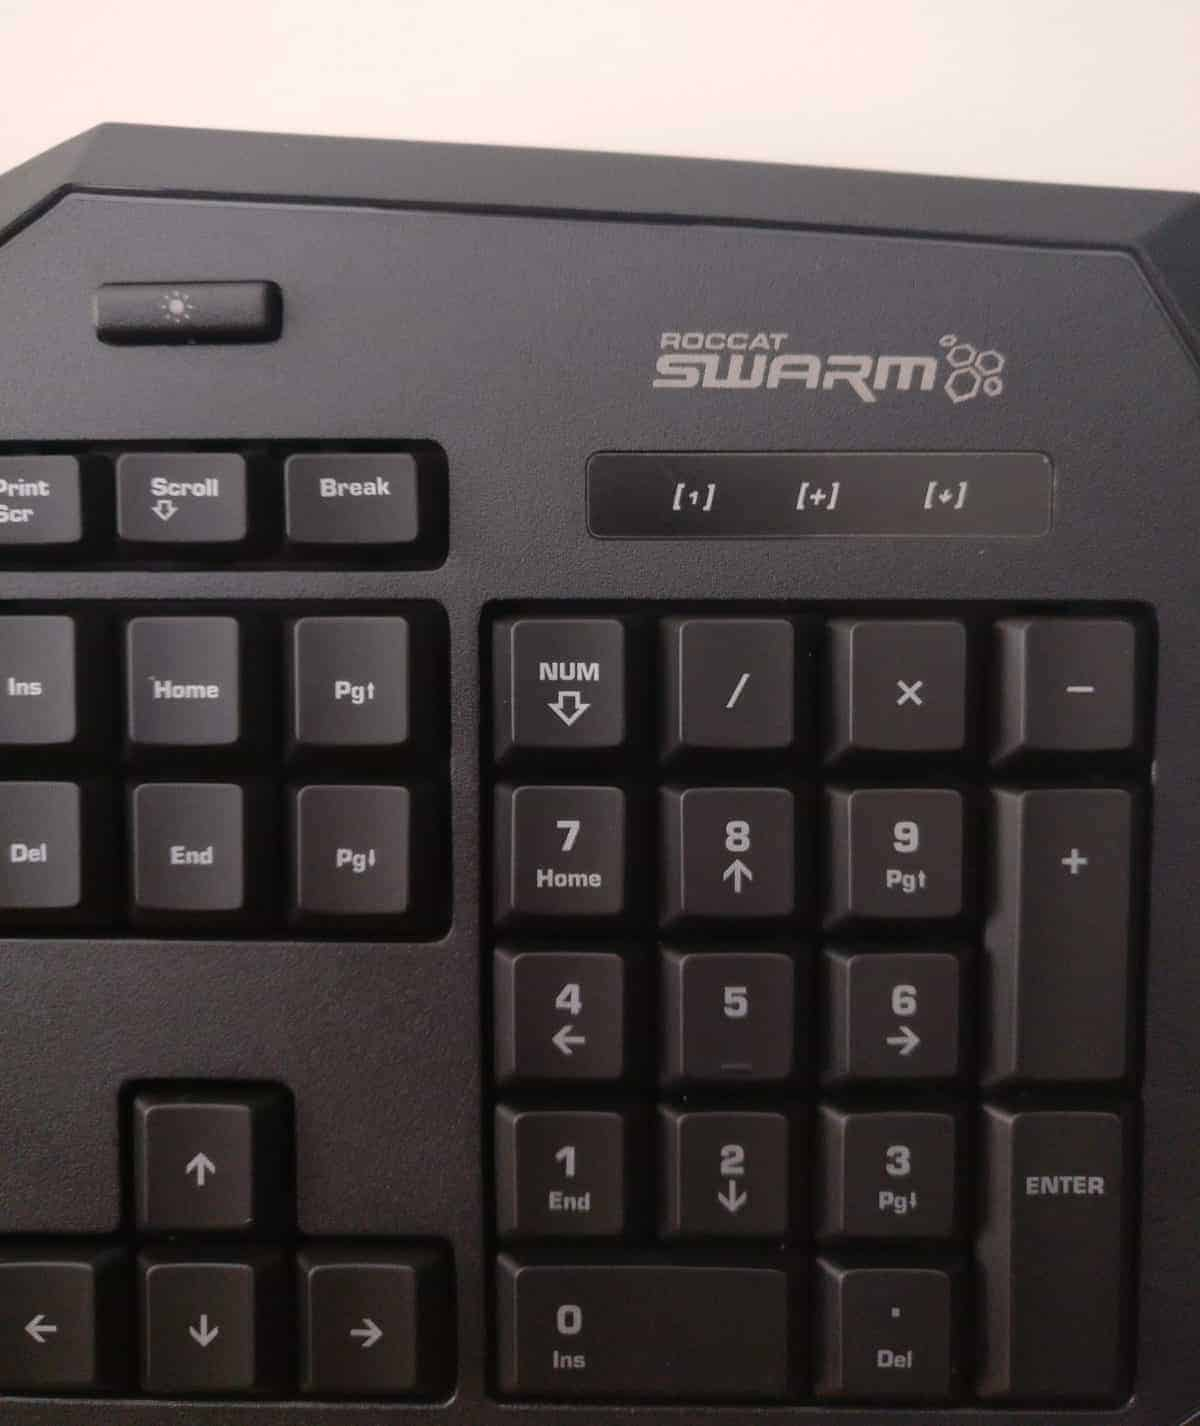 Roccat-Isku-fx-plus-Photos12 Roccat Isku+ Force FX Gaming Keyboard Review